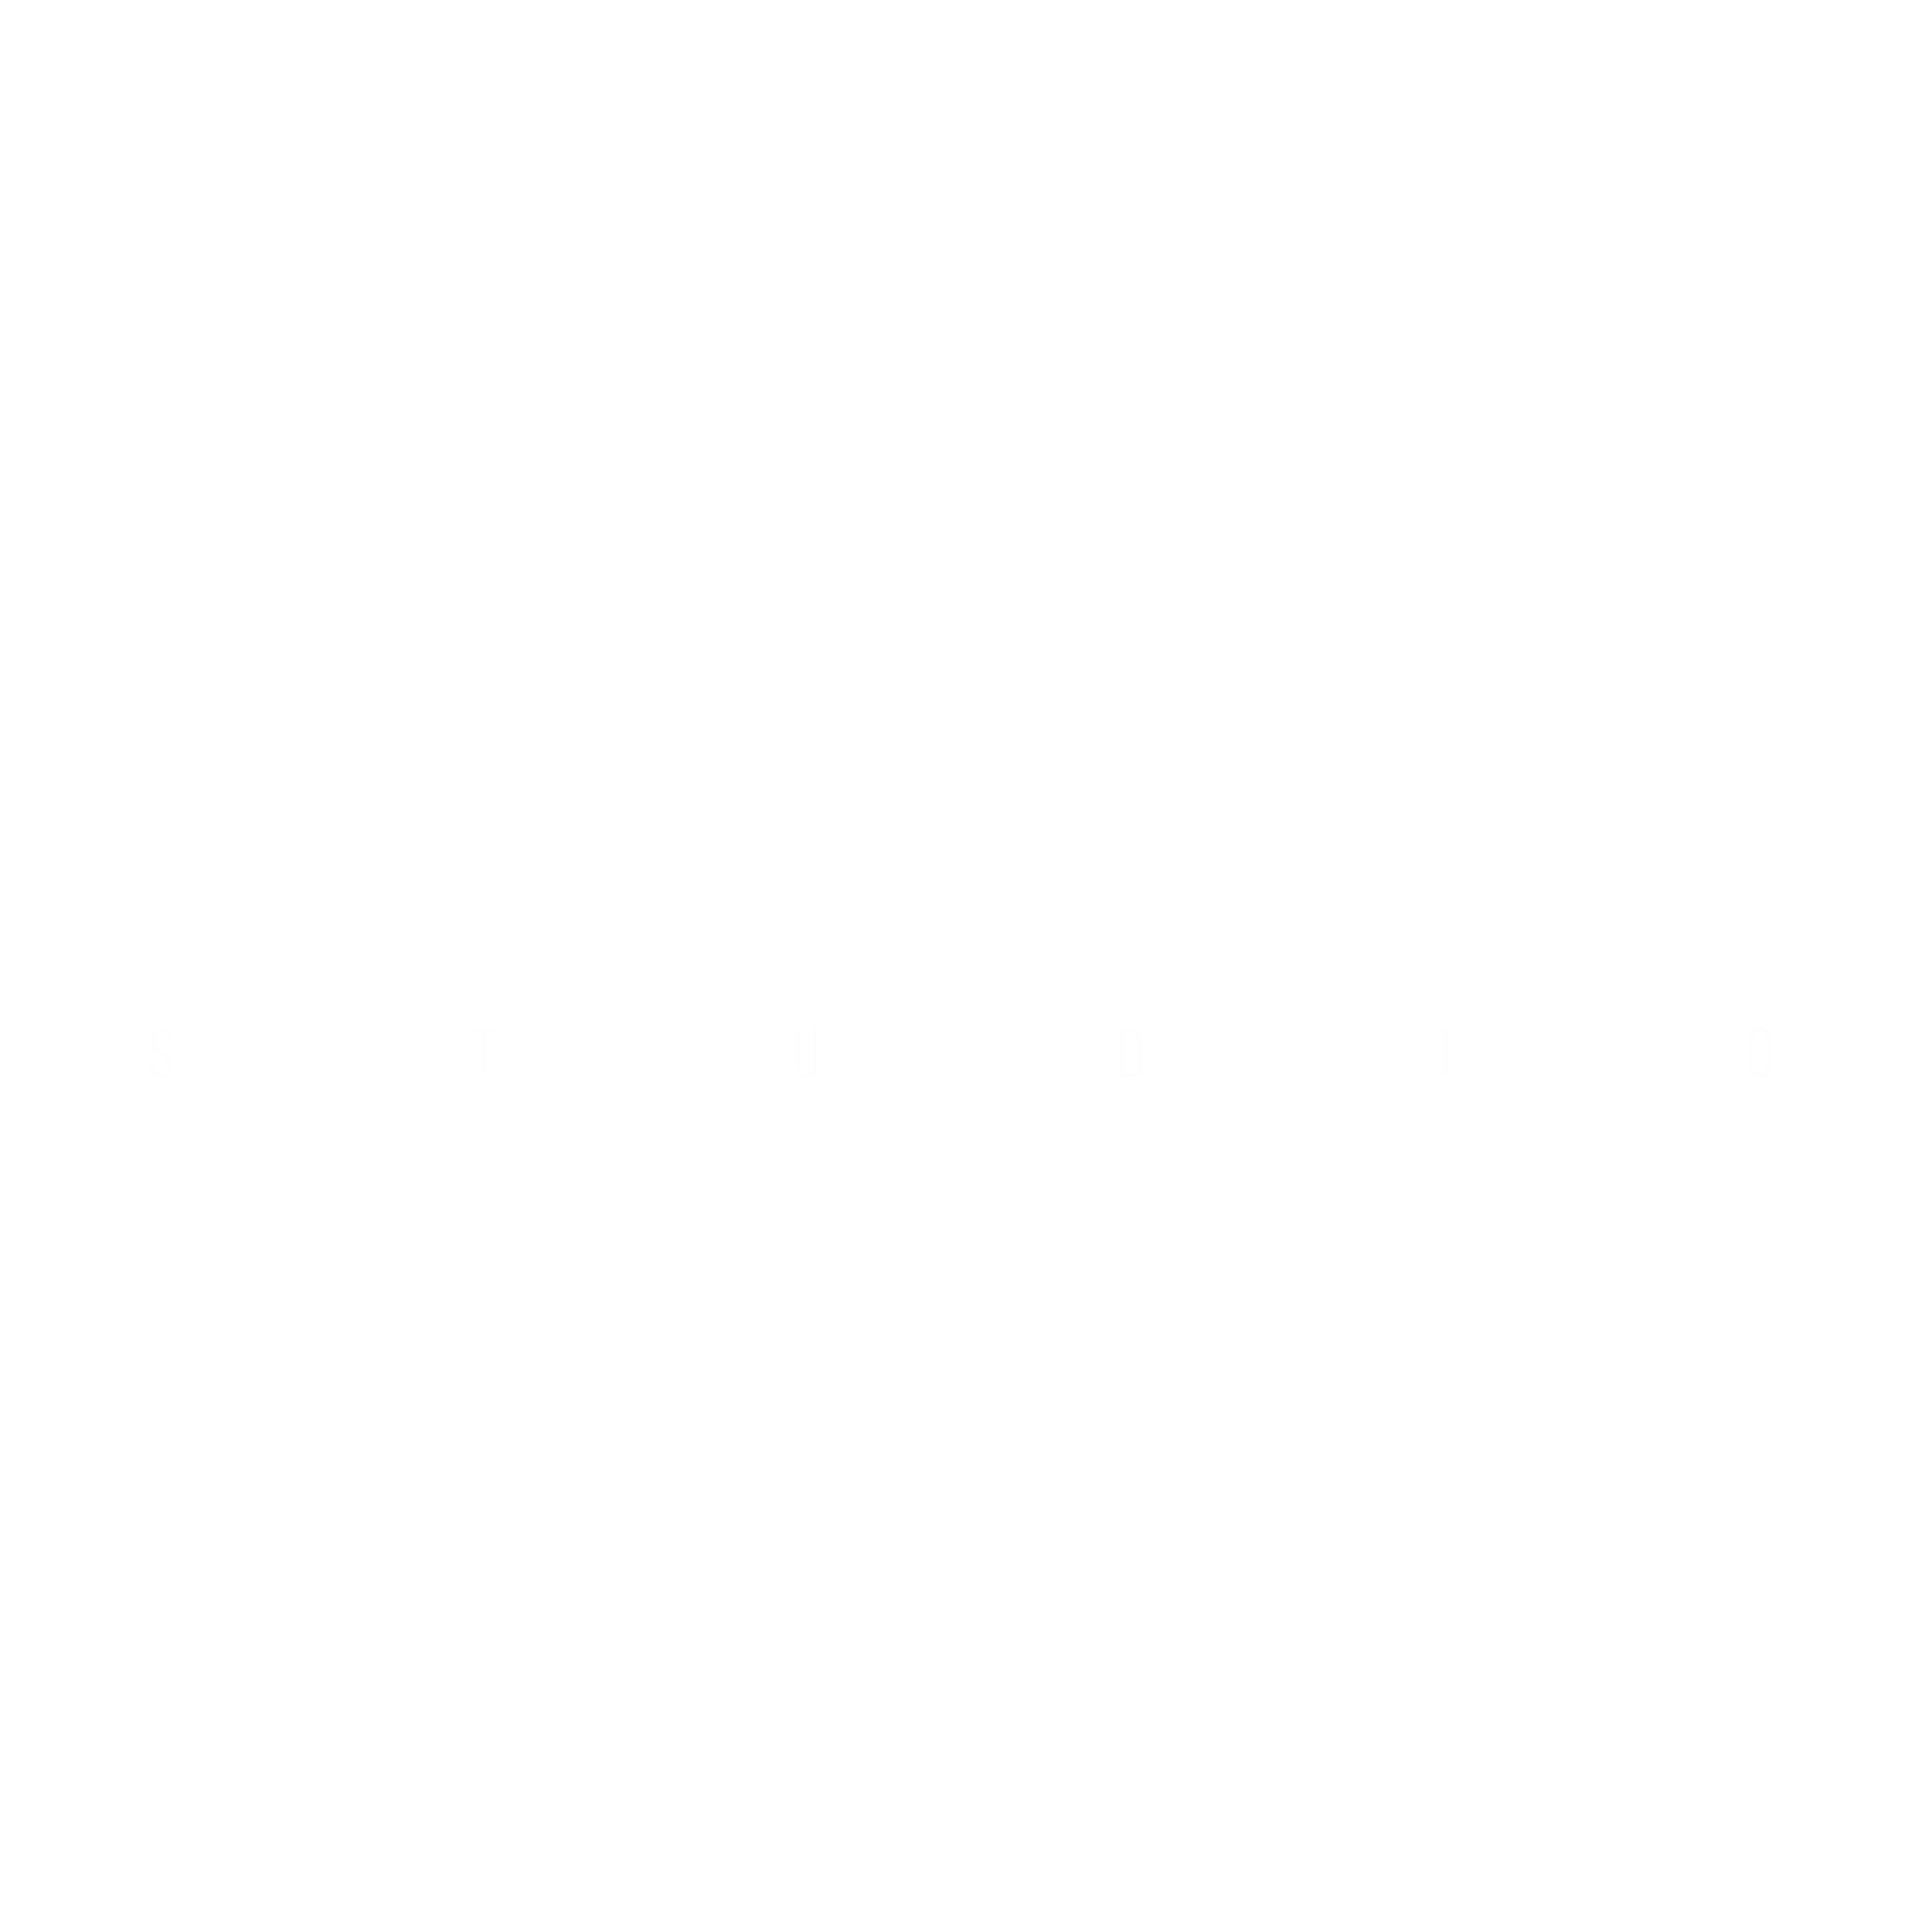 malephotography